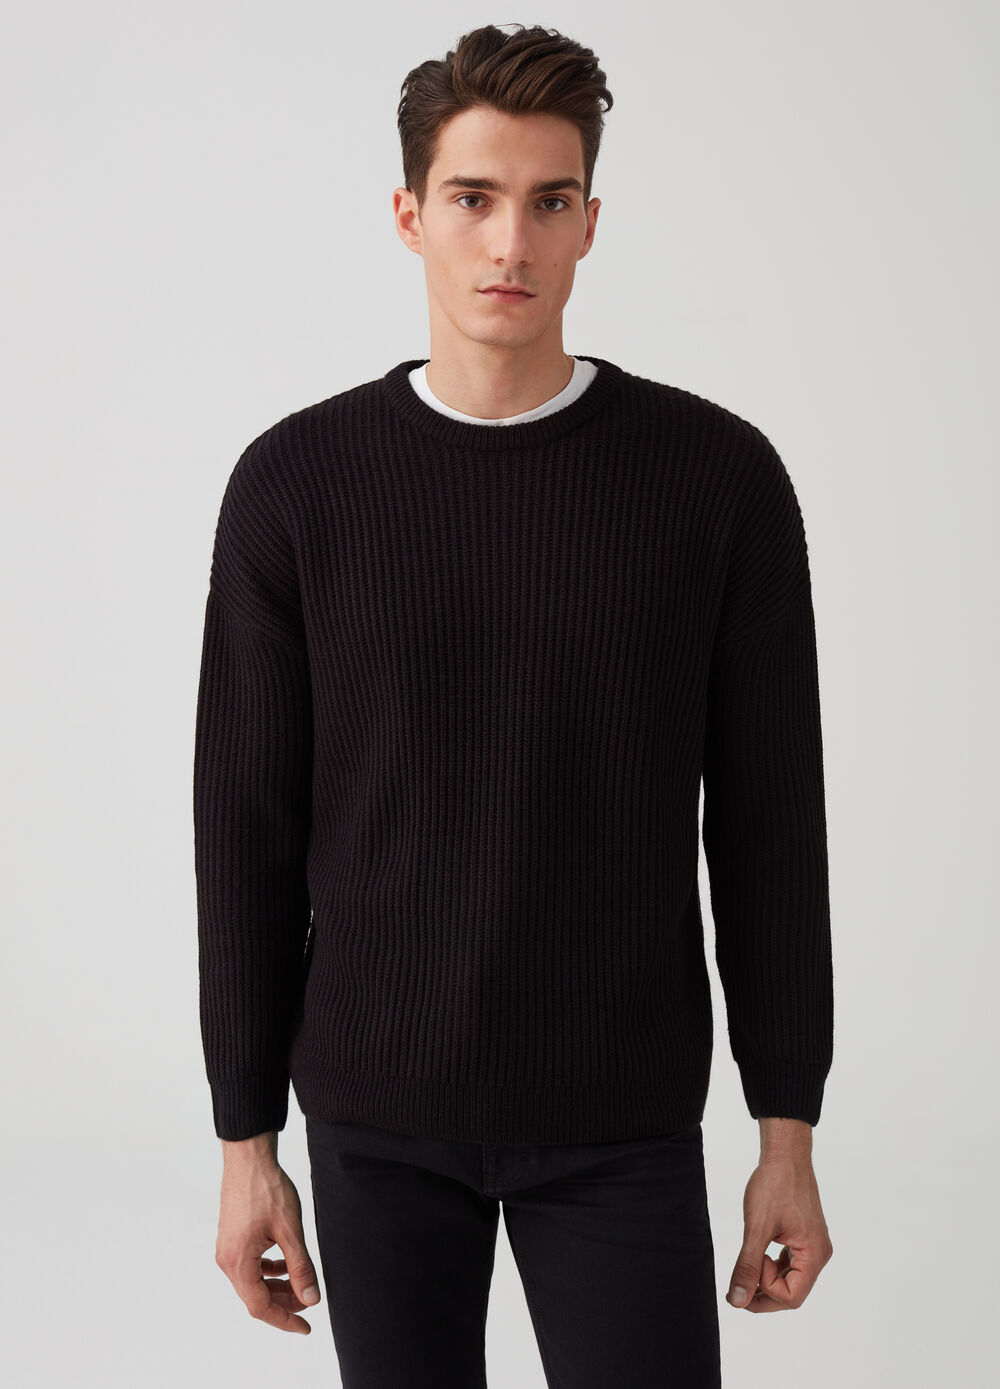 Knit pullover with ribbed weave